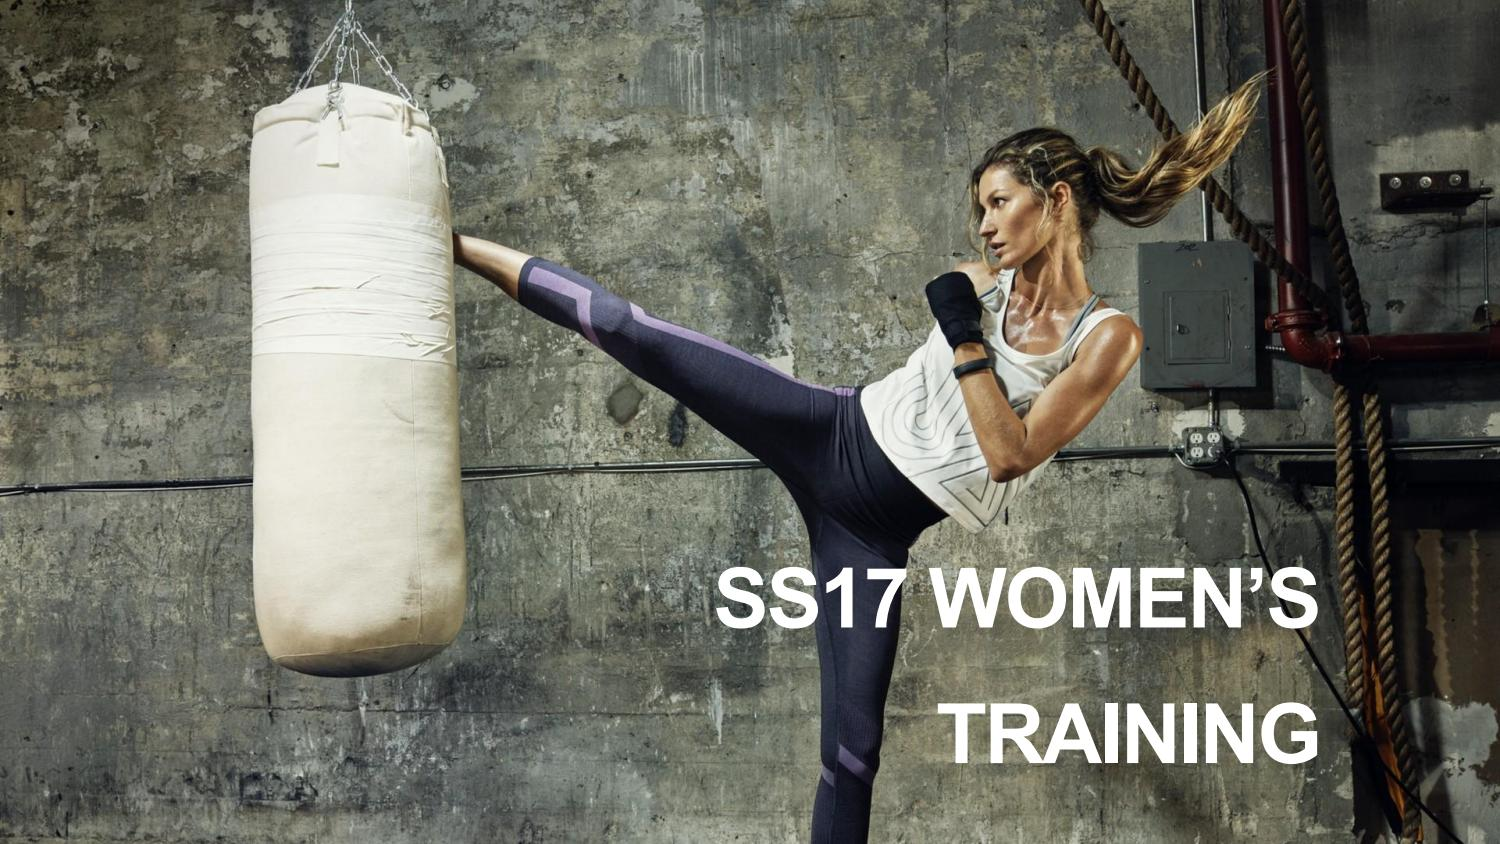 a15ef83144cb Under Armour Spring Summer 2017 Womens Training SELECTION by Lera SPORT  Shop & Service - issuu